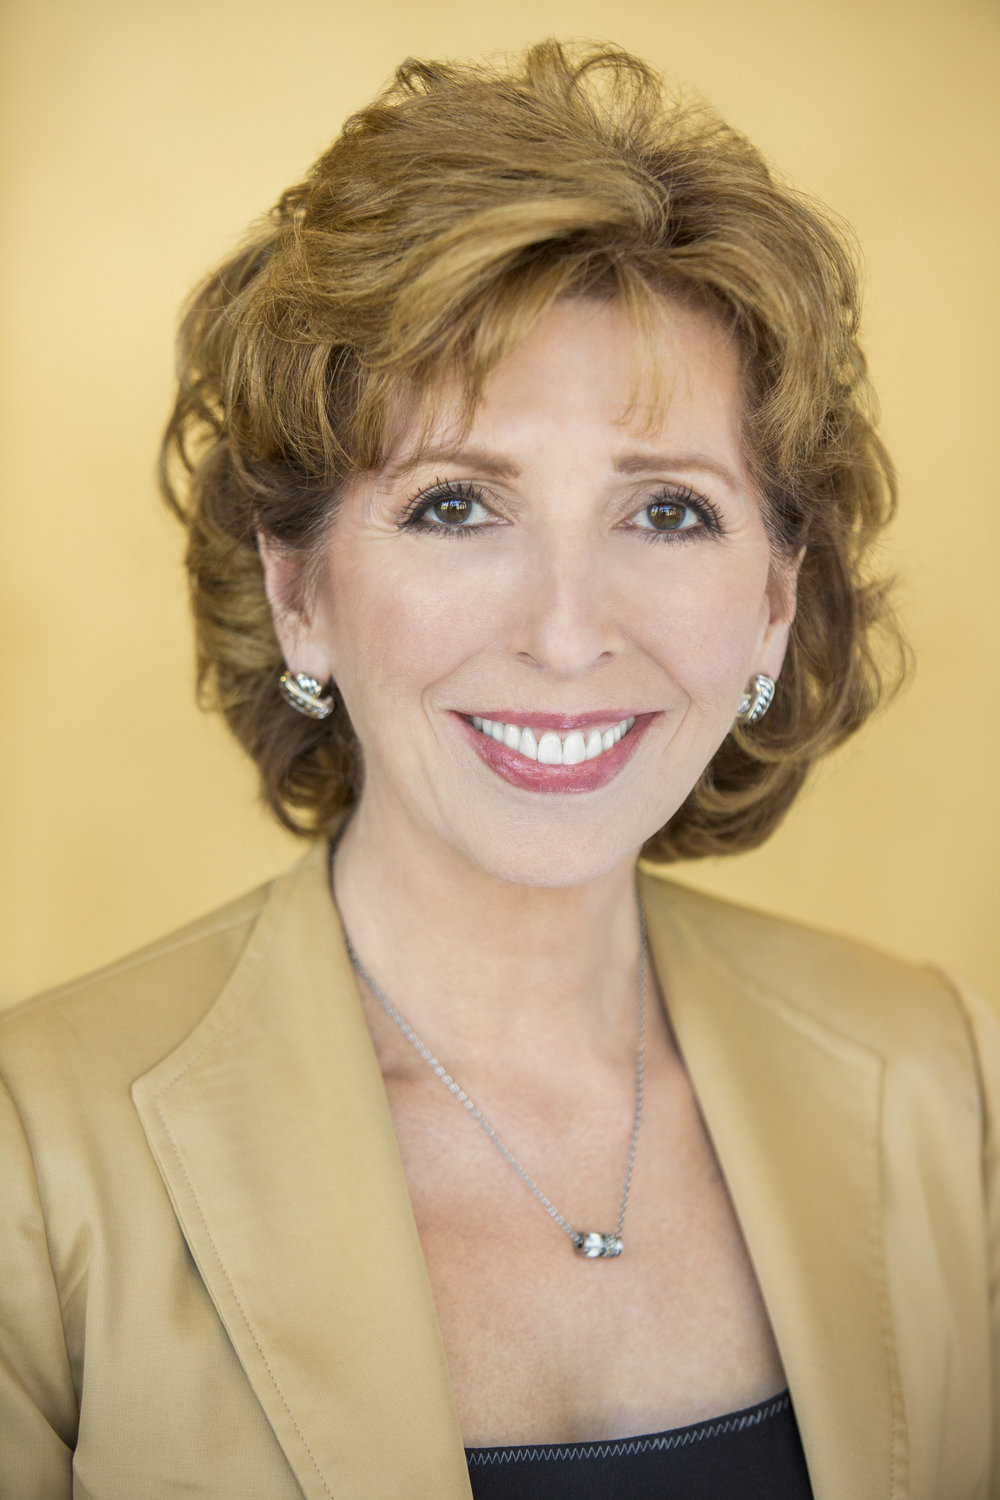 Katehi_Aug2014_photo2_hires-2.jpg